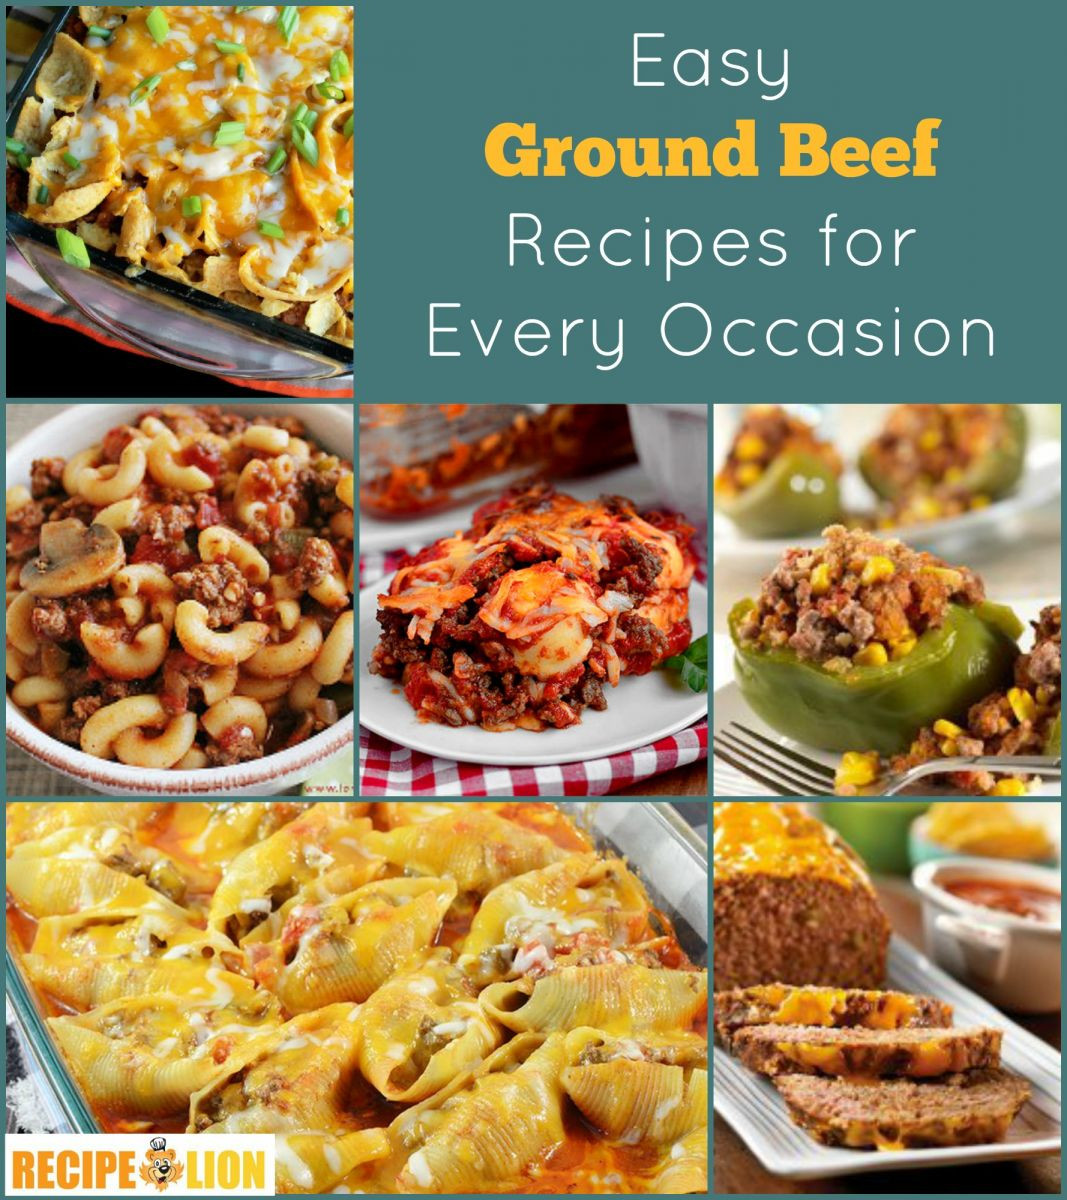 Simple Recipes With Ground Beef  133 Easy Ground Beef Recipes